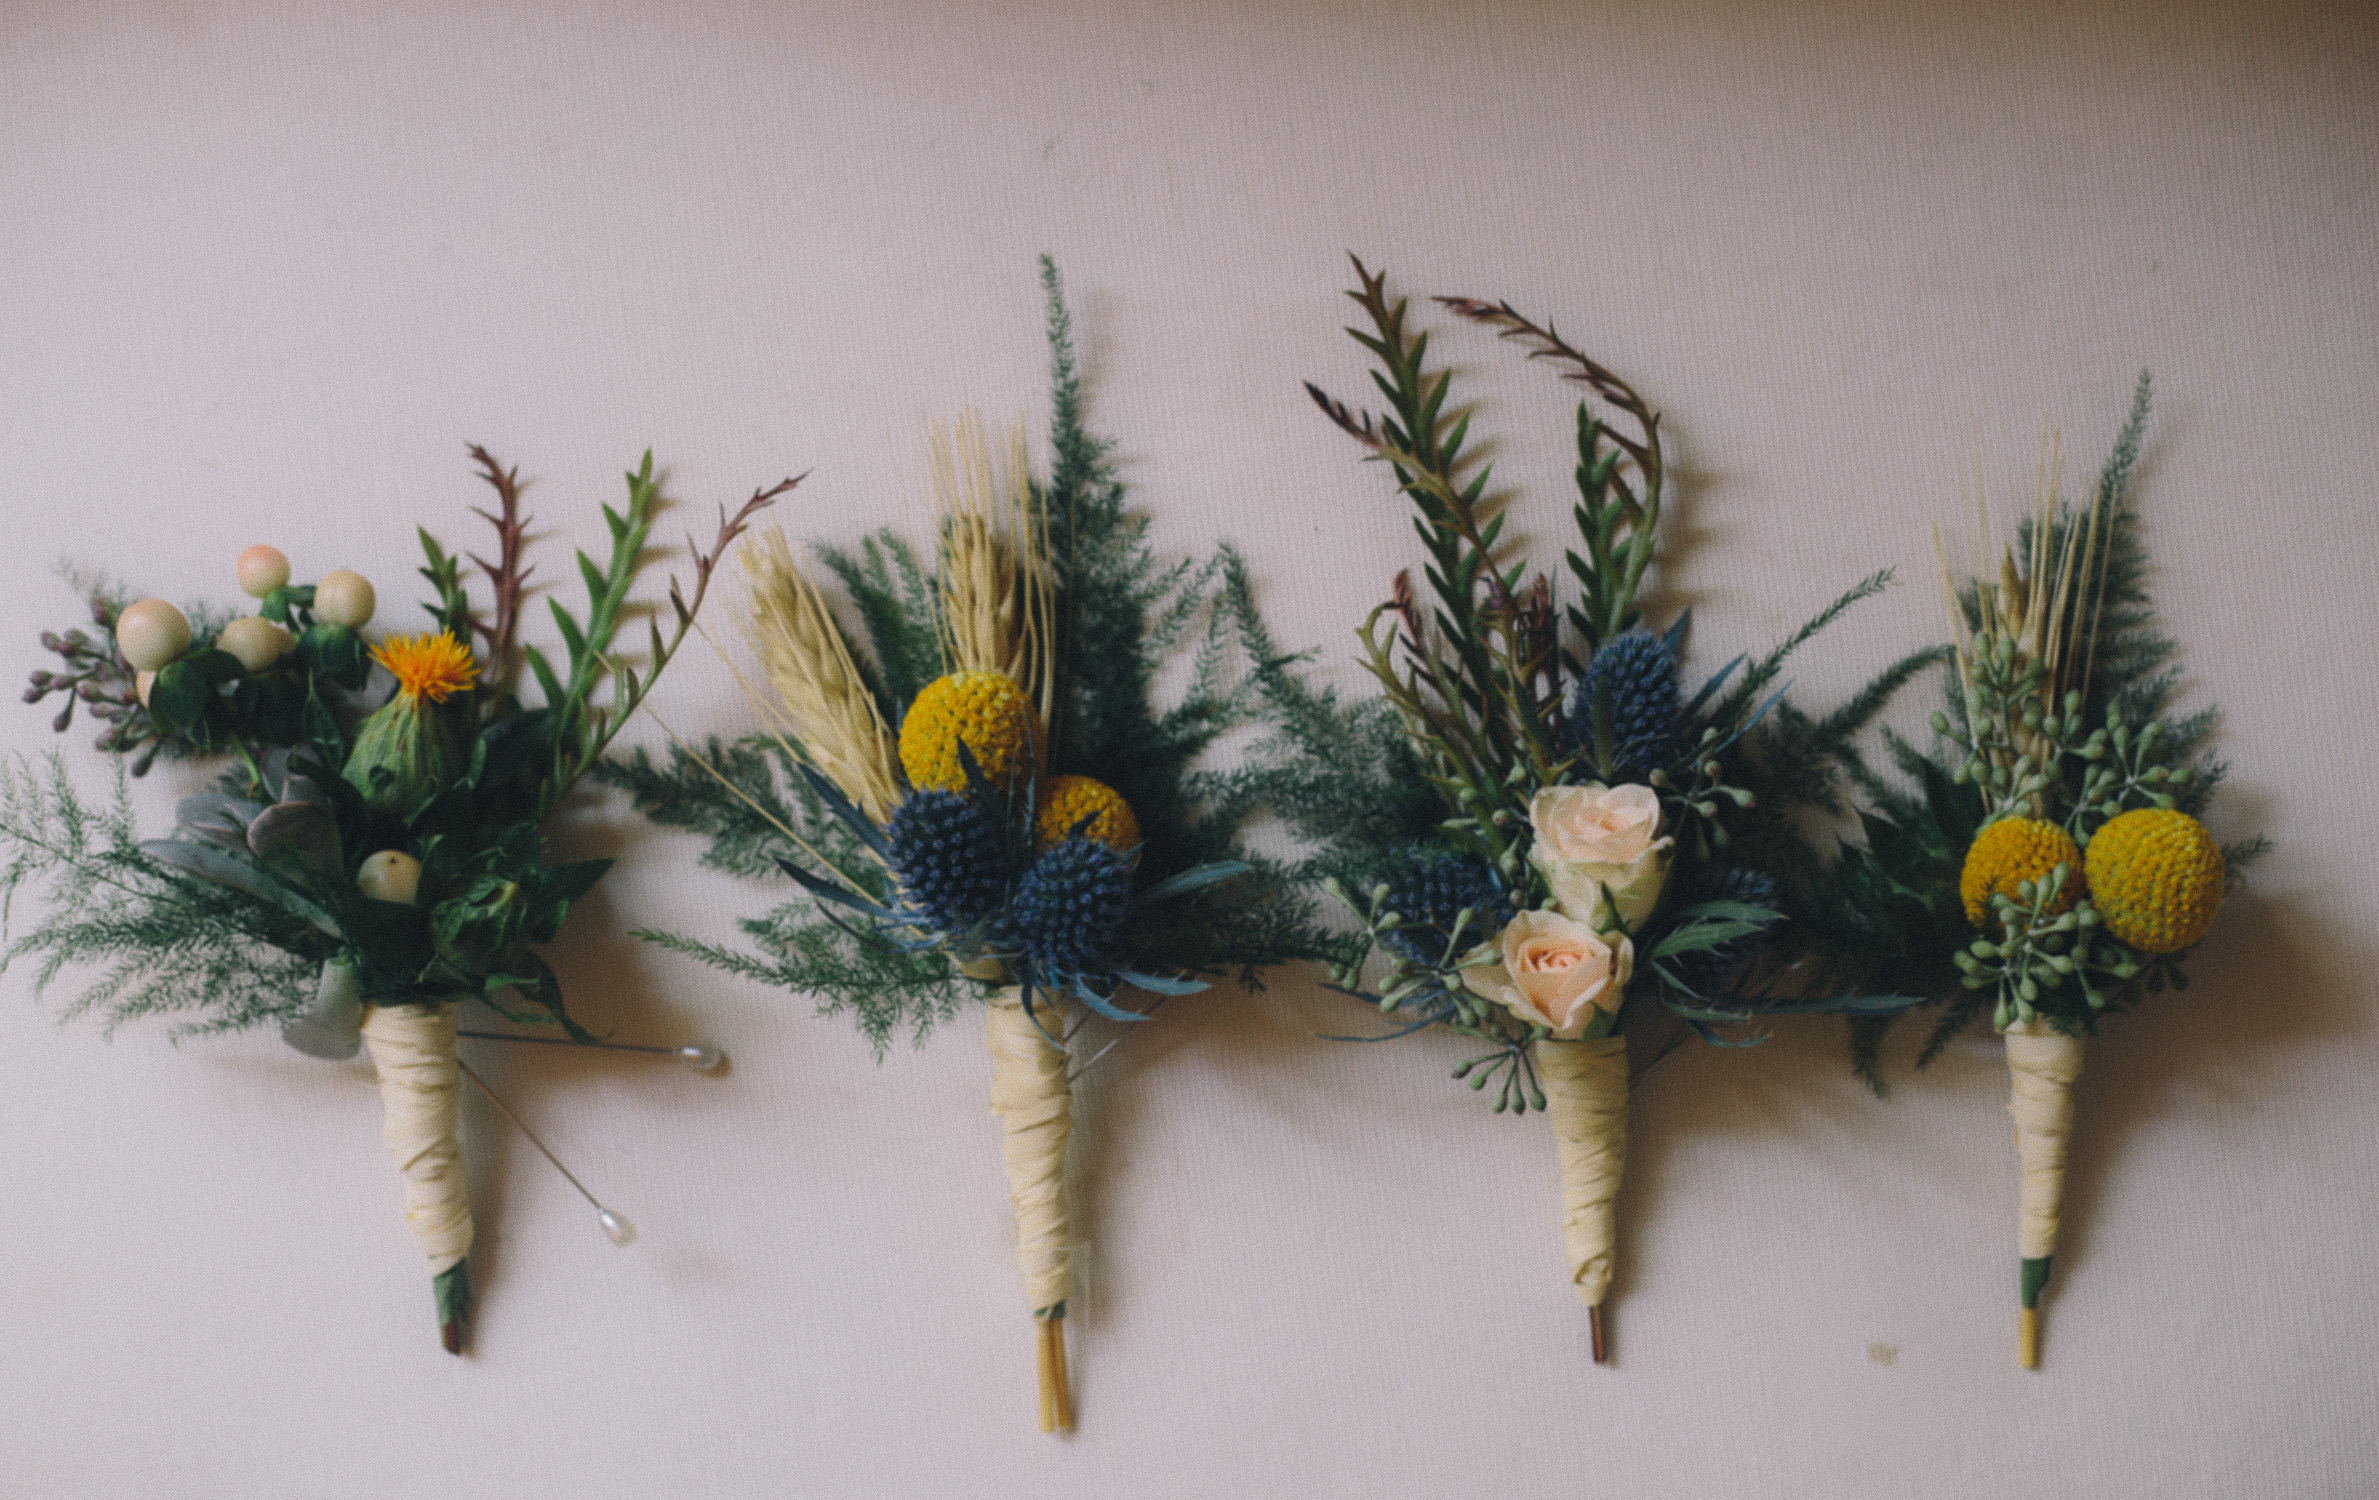 Four fresh greenery and dried blooms boutonierres tied with twine line up on a surface at Hotel Ocho